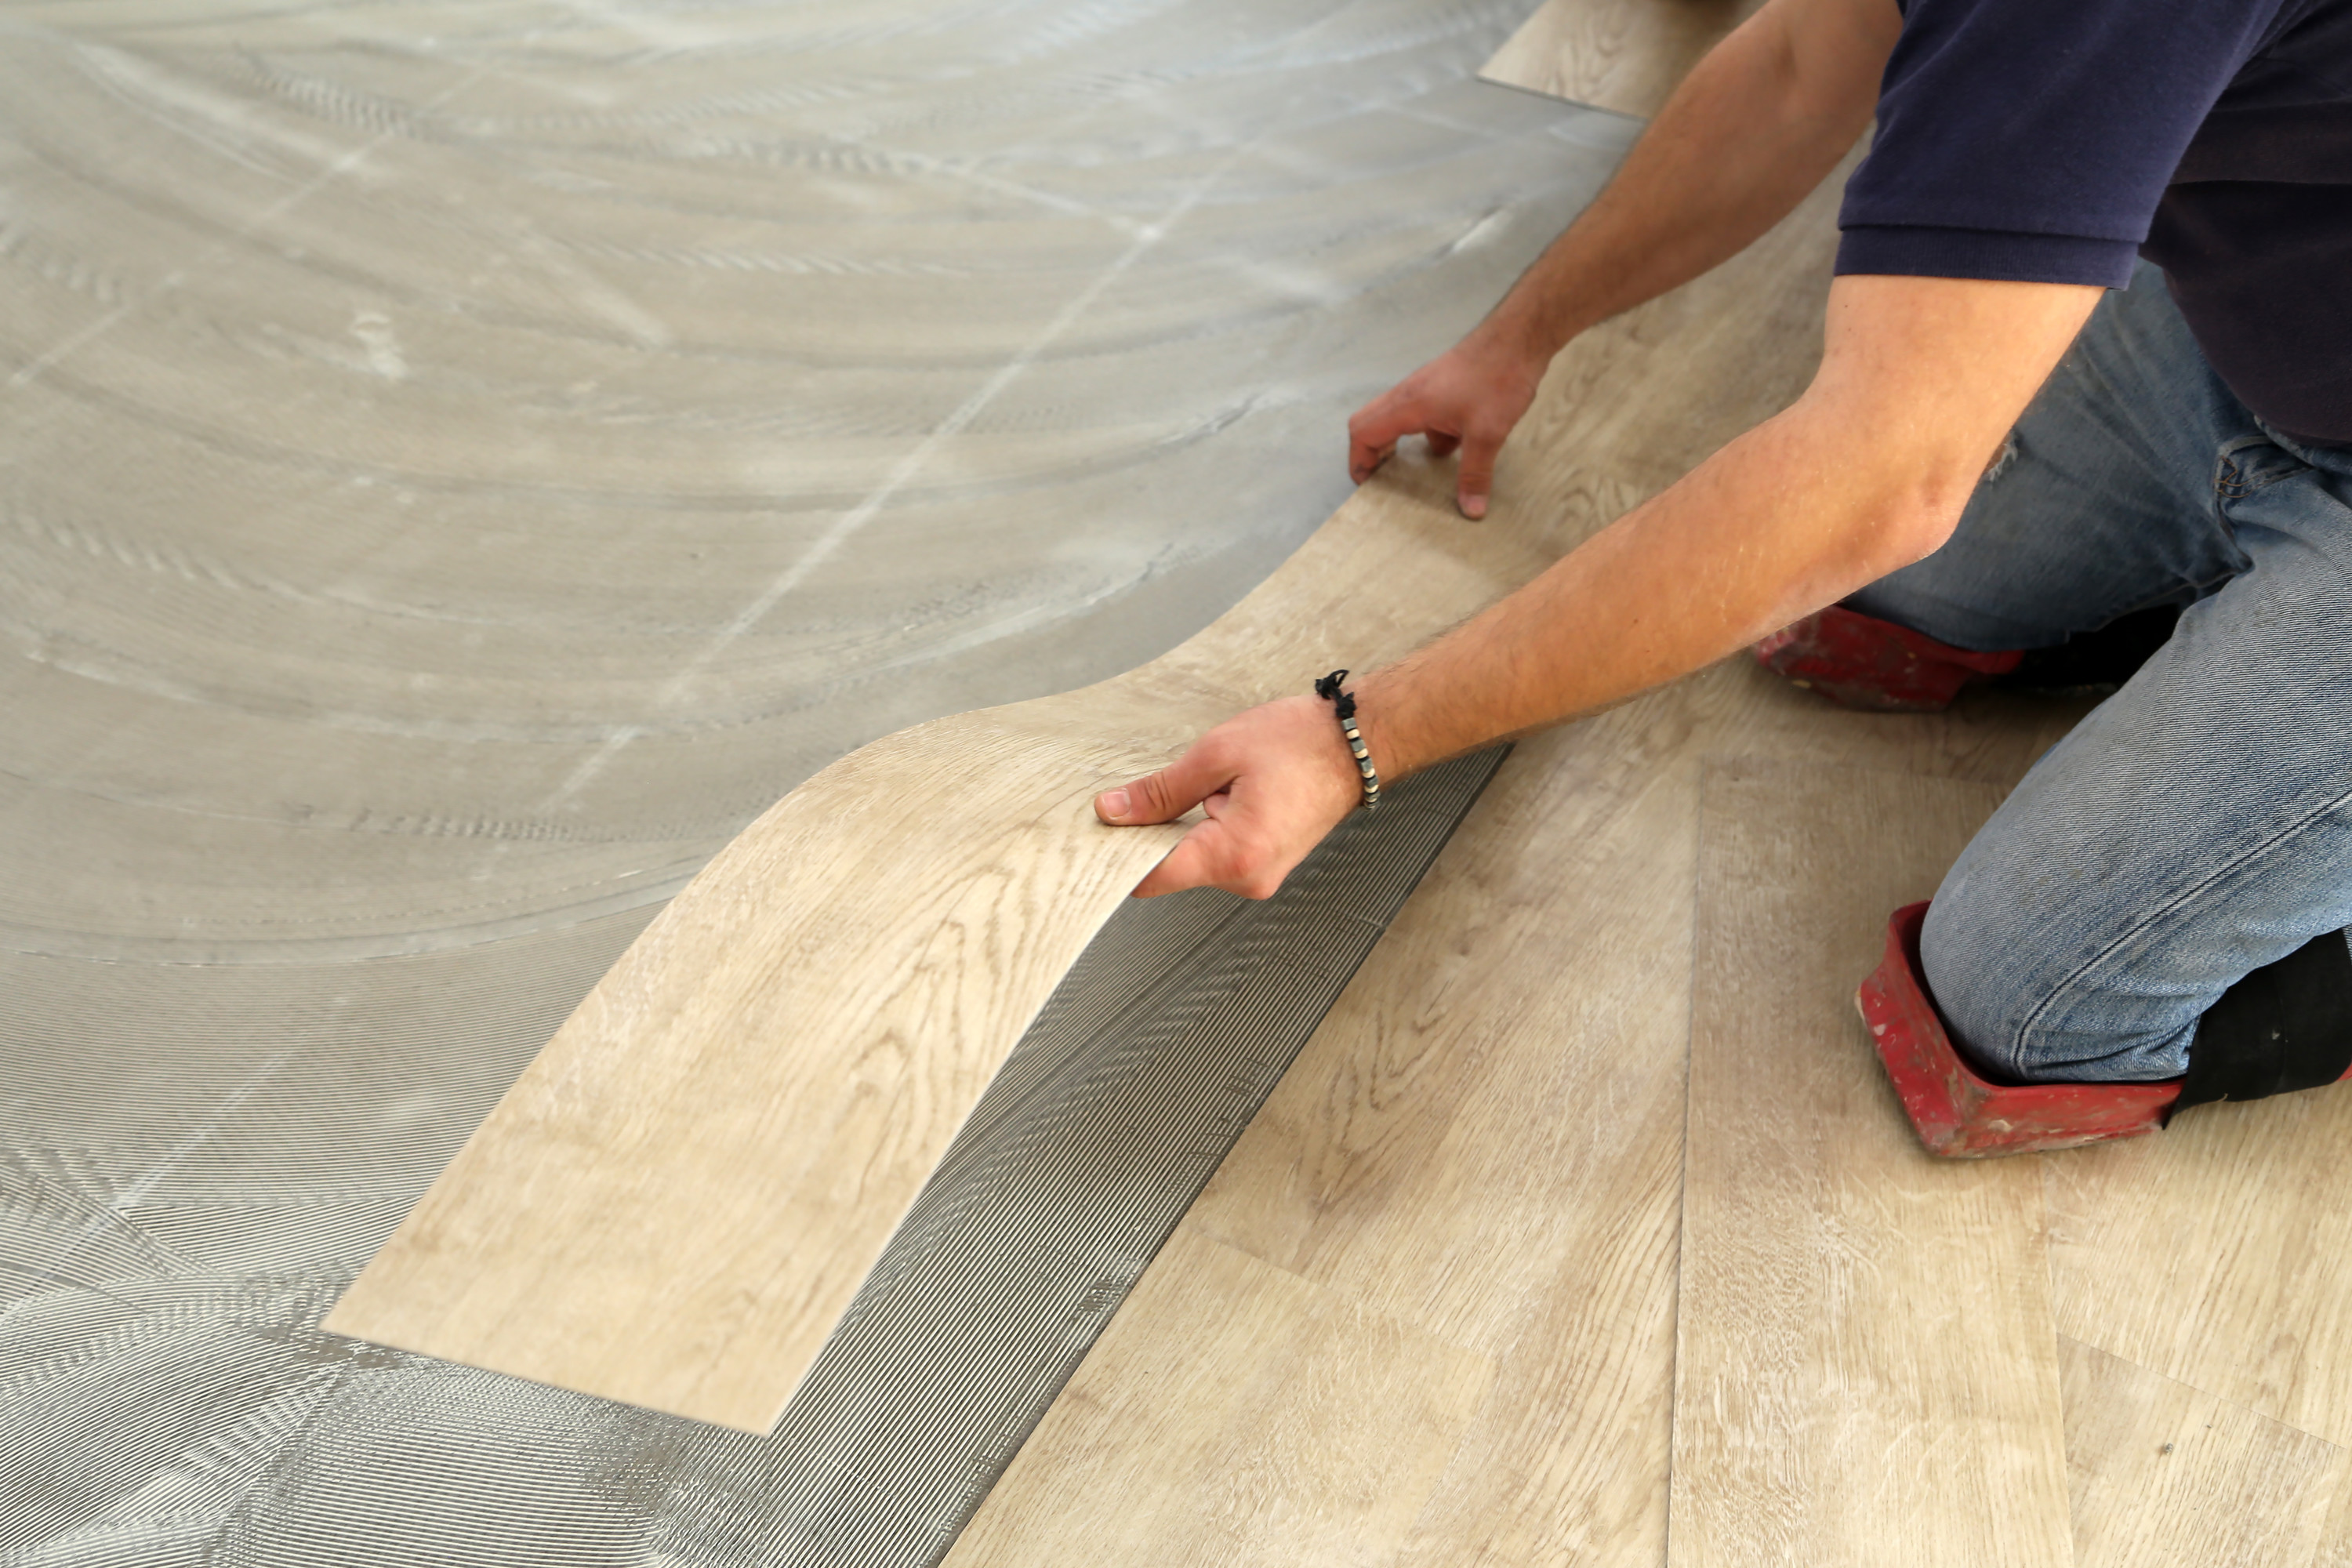 Vinyl tile flooring being installed to a home in Concord, CA